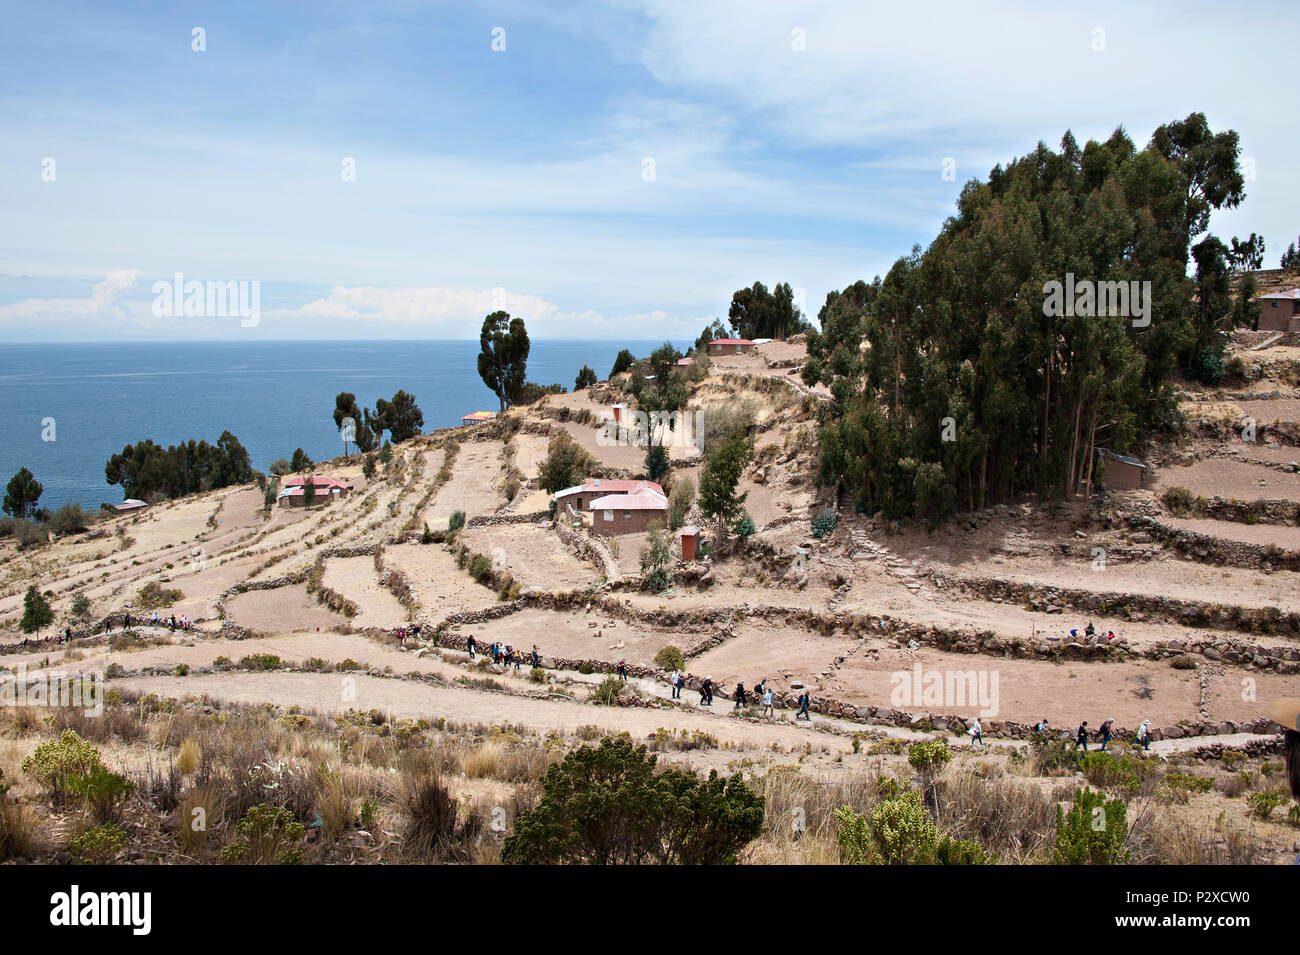 The public path leads to the village at the very top of the hill on Taquile Island, Puno, Peru, South America Stock Photo